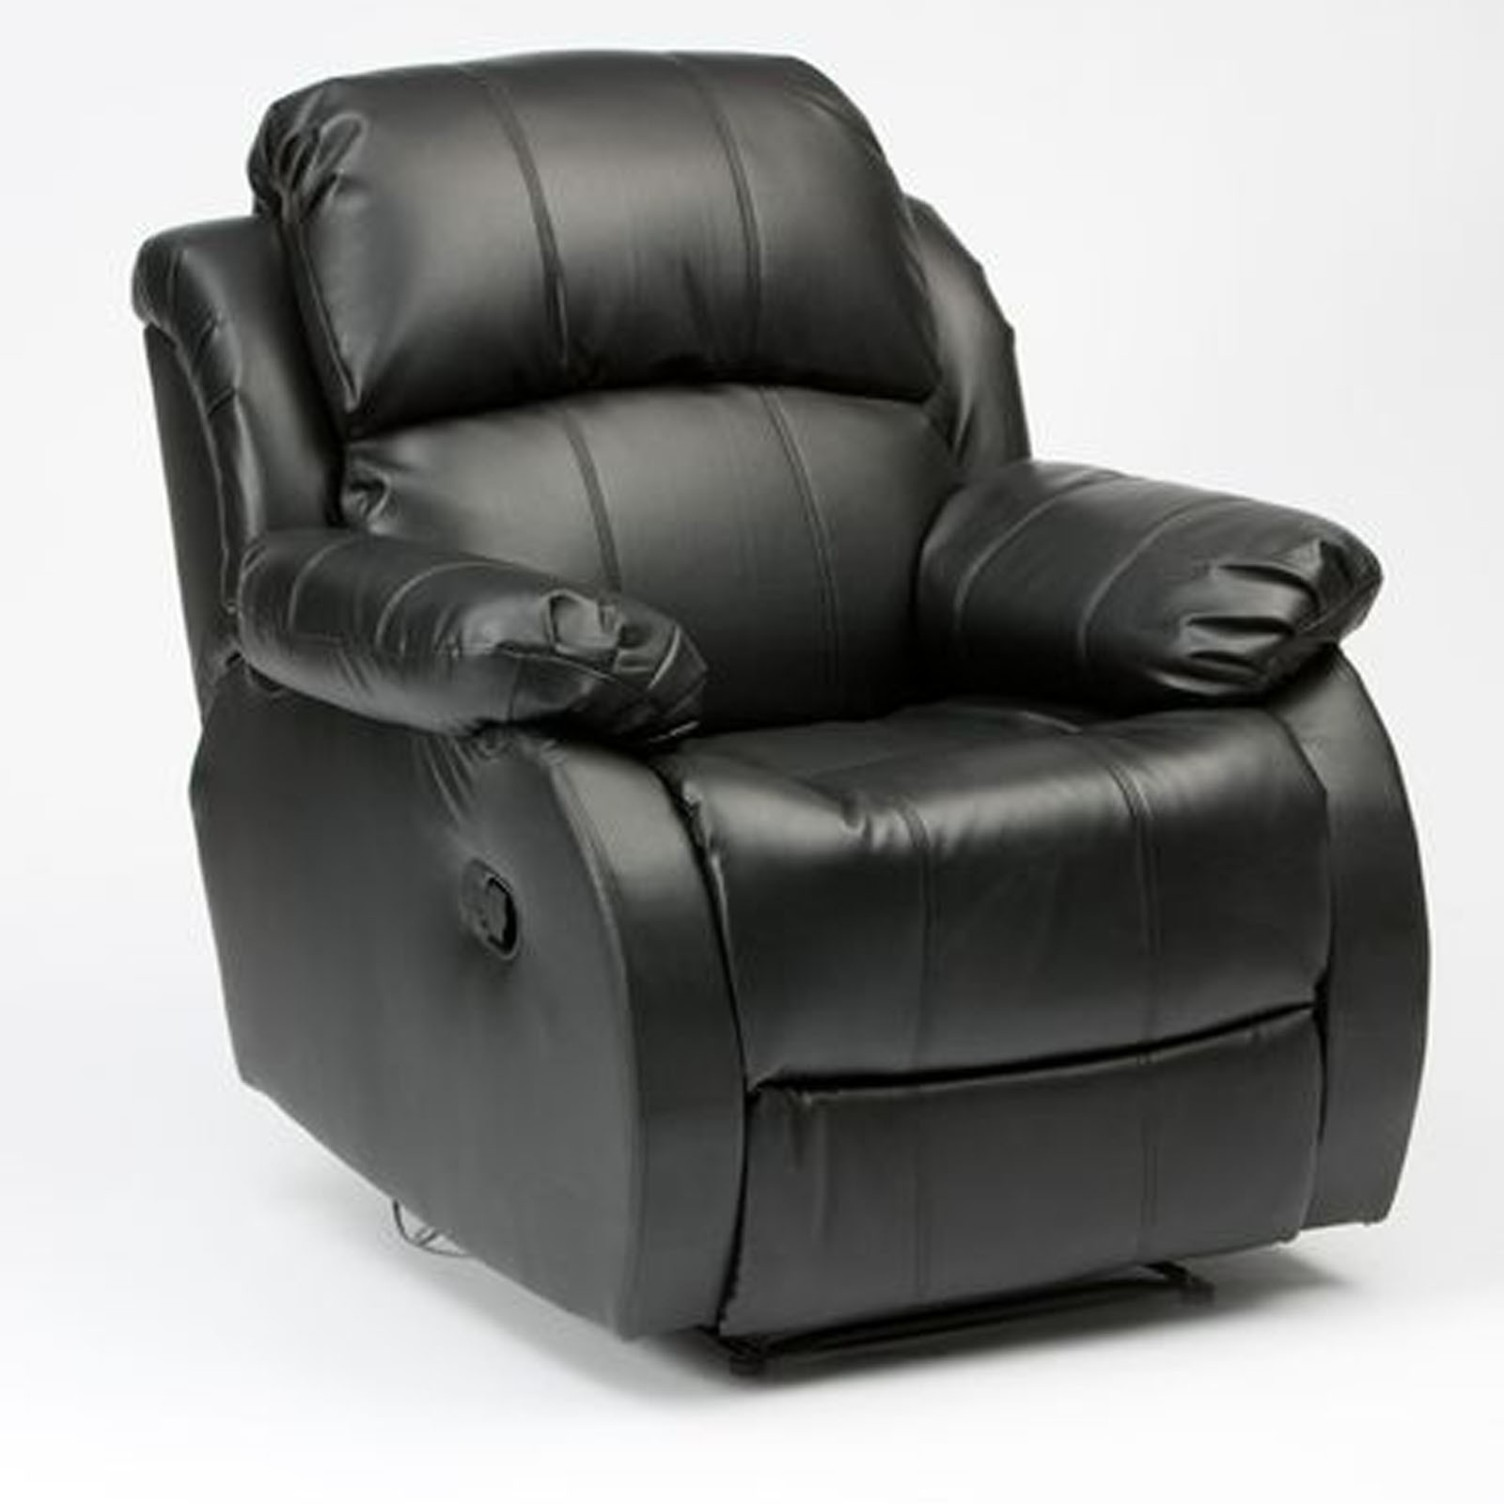 Types Of Sofa: A Guide For Types Of Leather Recliners 2